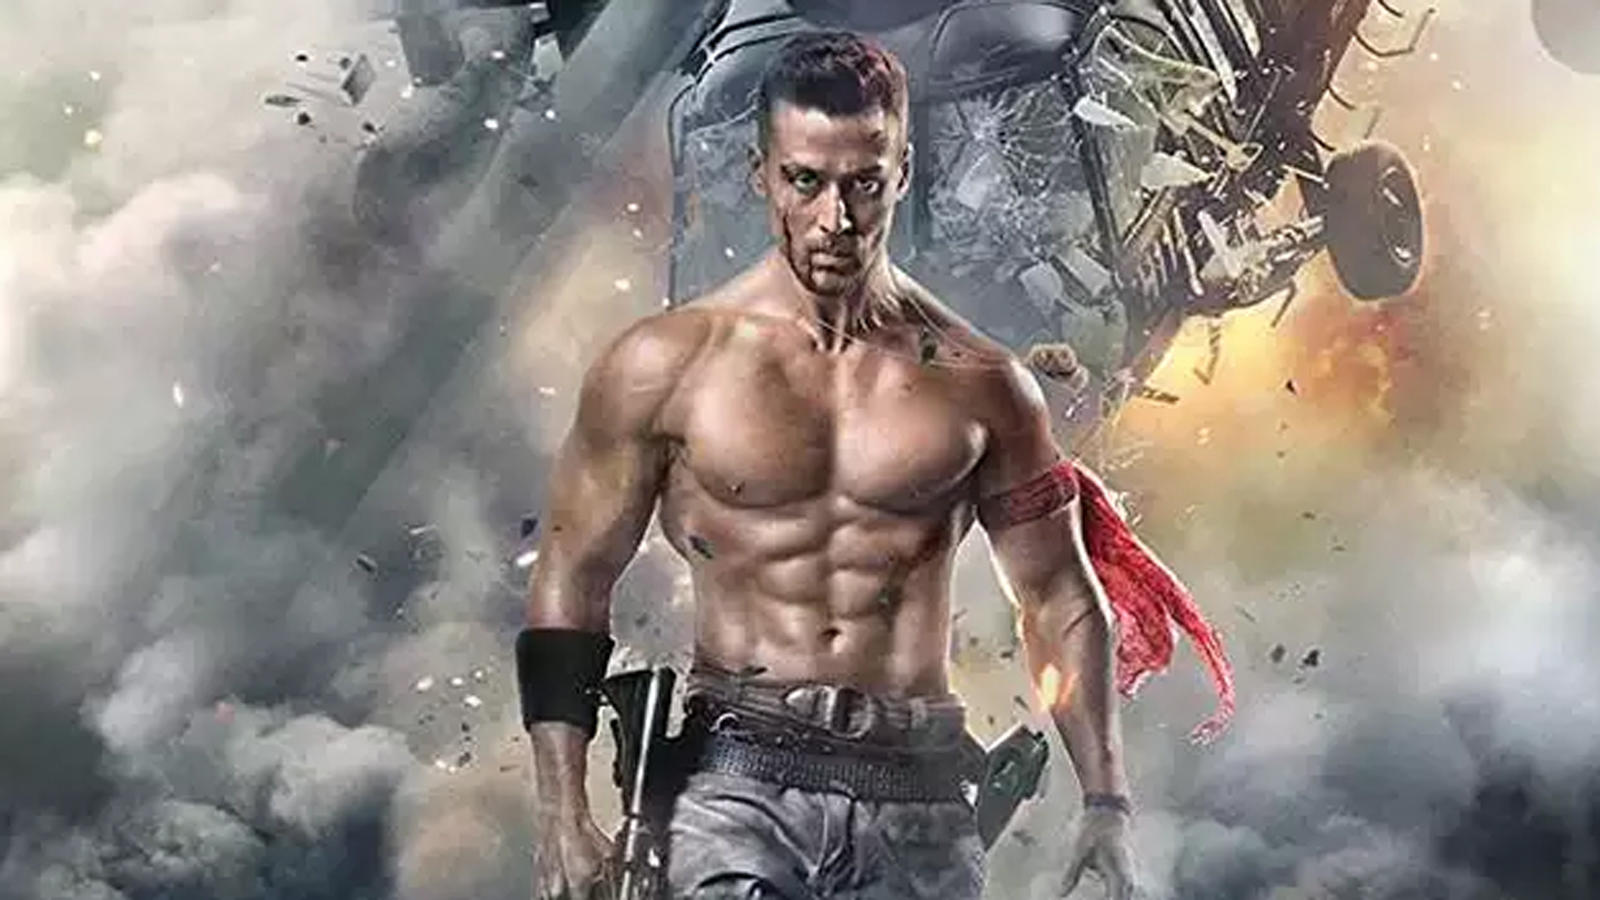 Tiger Shroff to choreograph his action scenes himself in 'Baaghi 3'